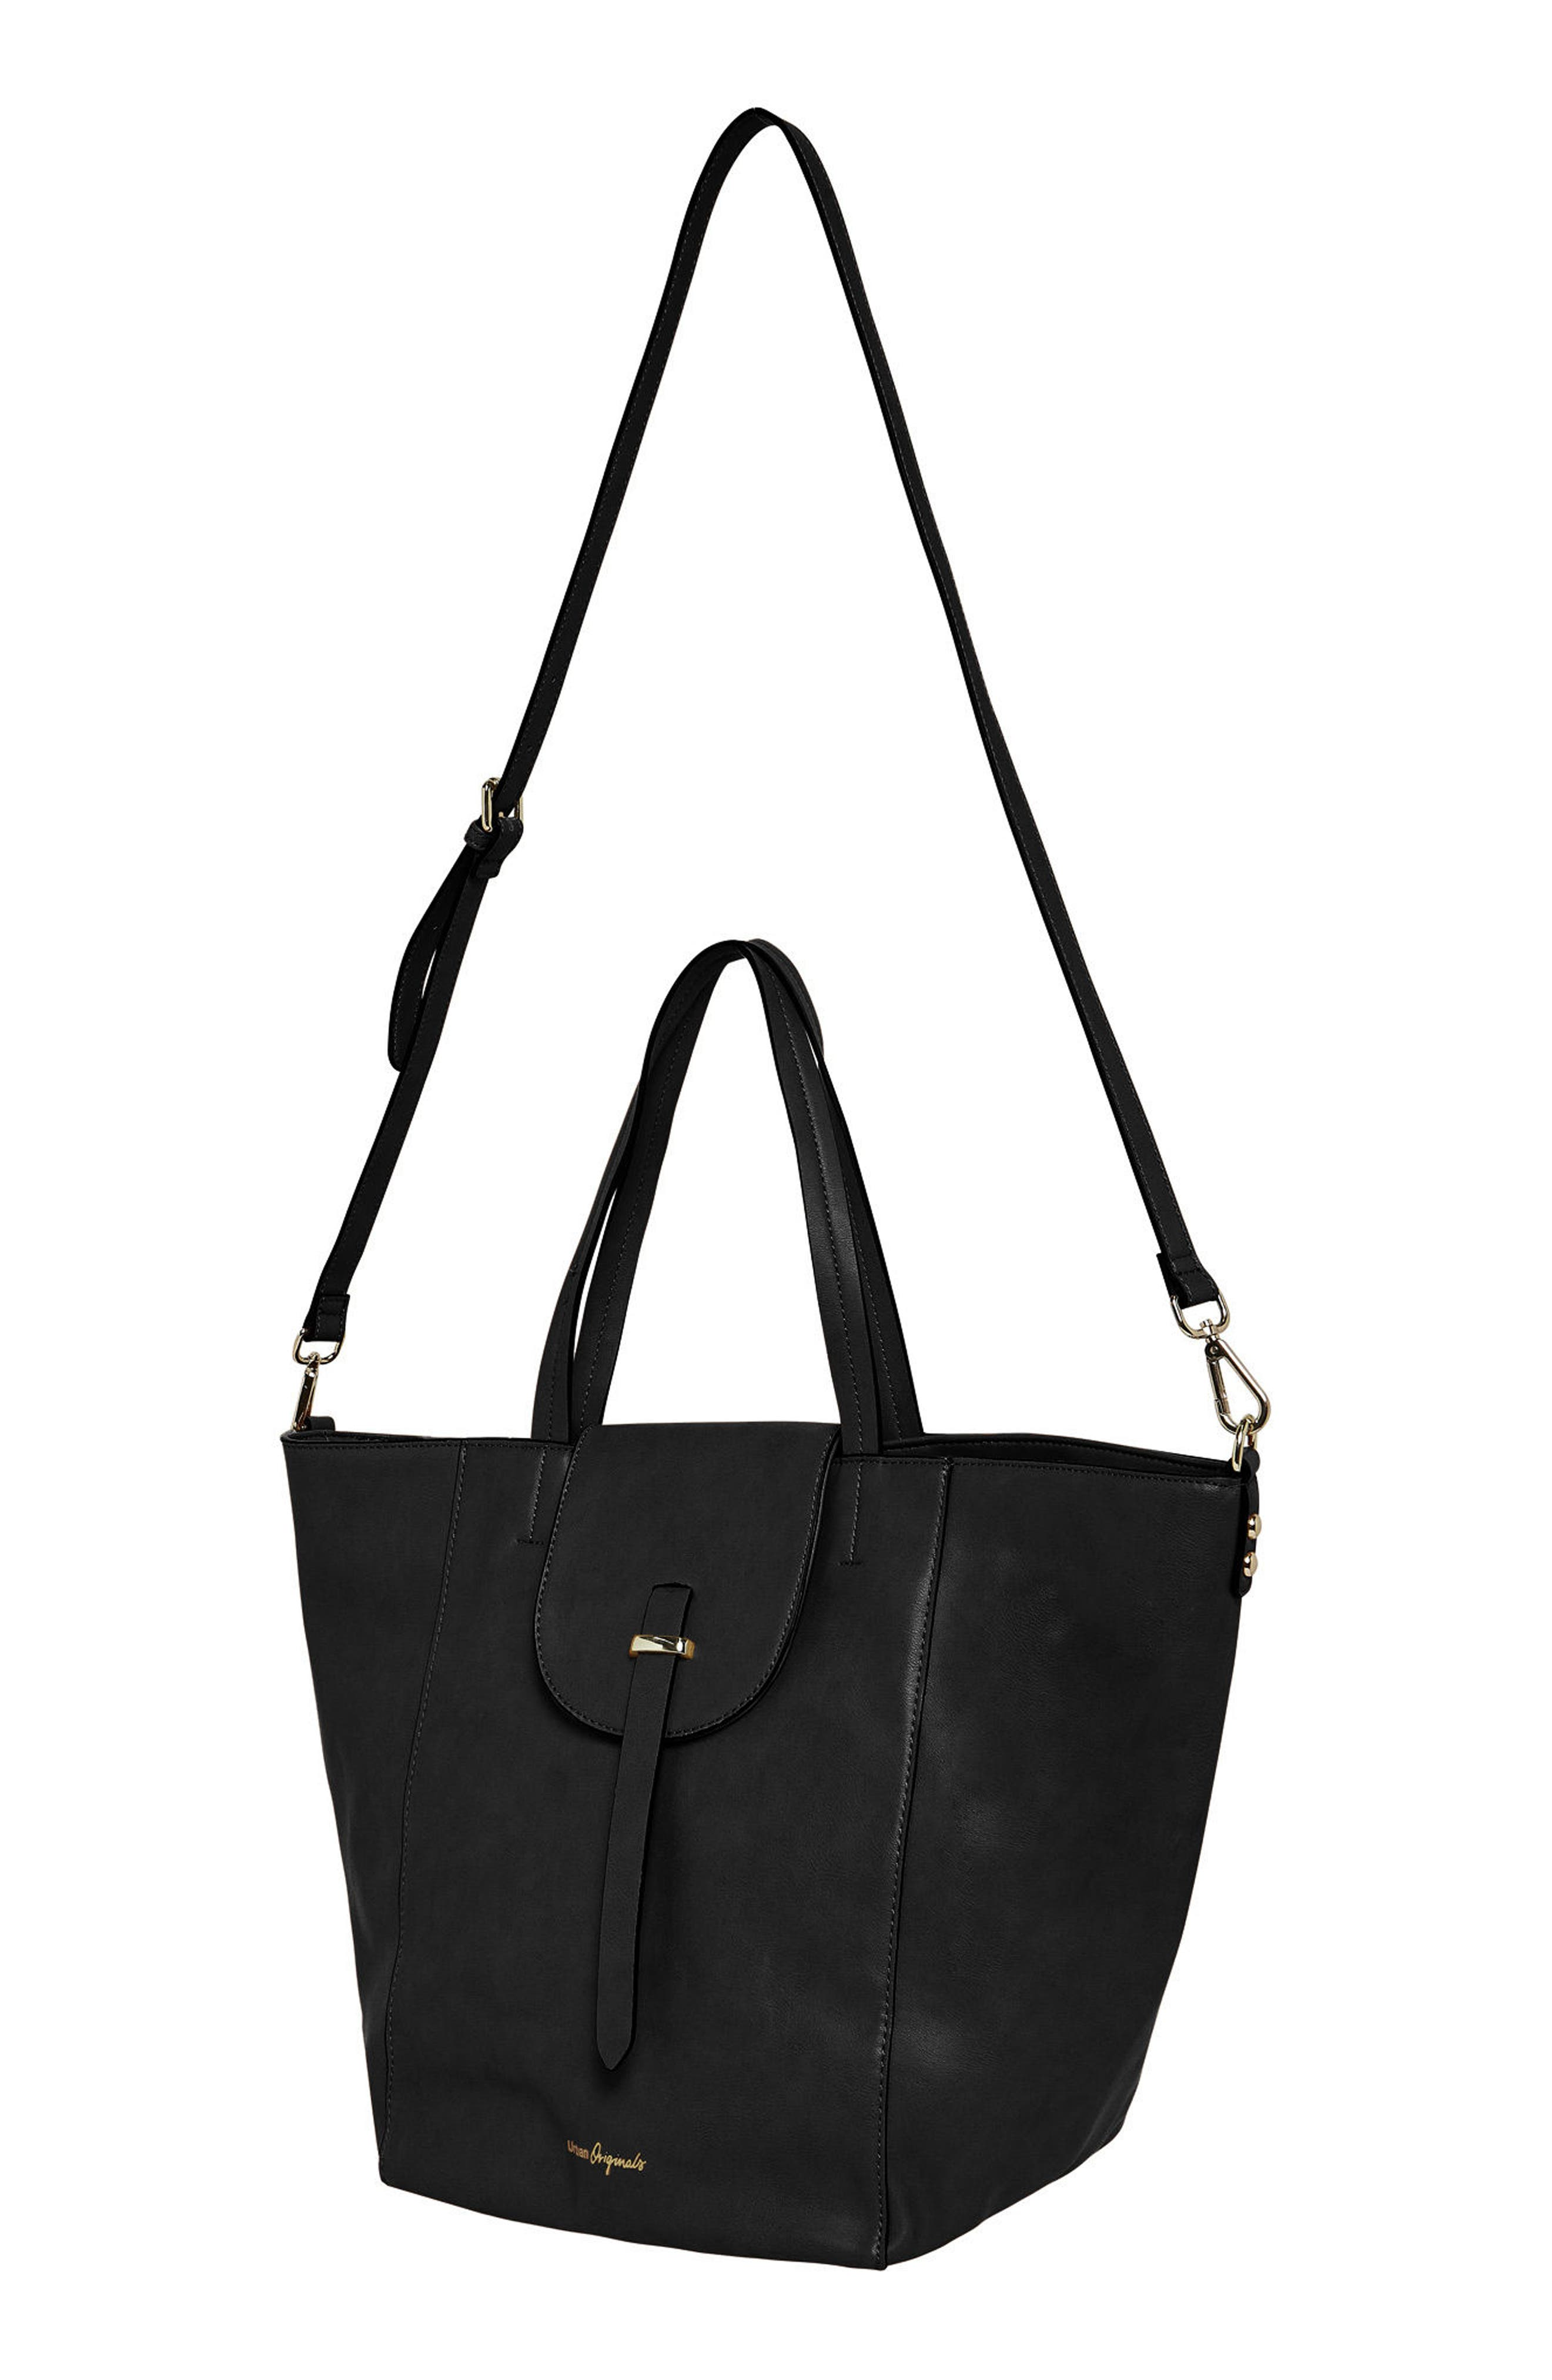 URBAN ORIGINALS,                             Urban Orginals Desire Vegan Leather Bucket Bag,                             Alternate thumbnail 2, color,                             001